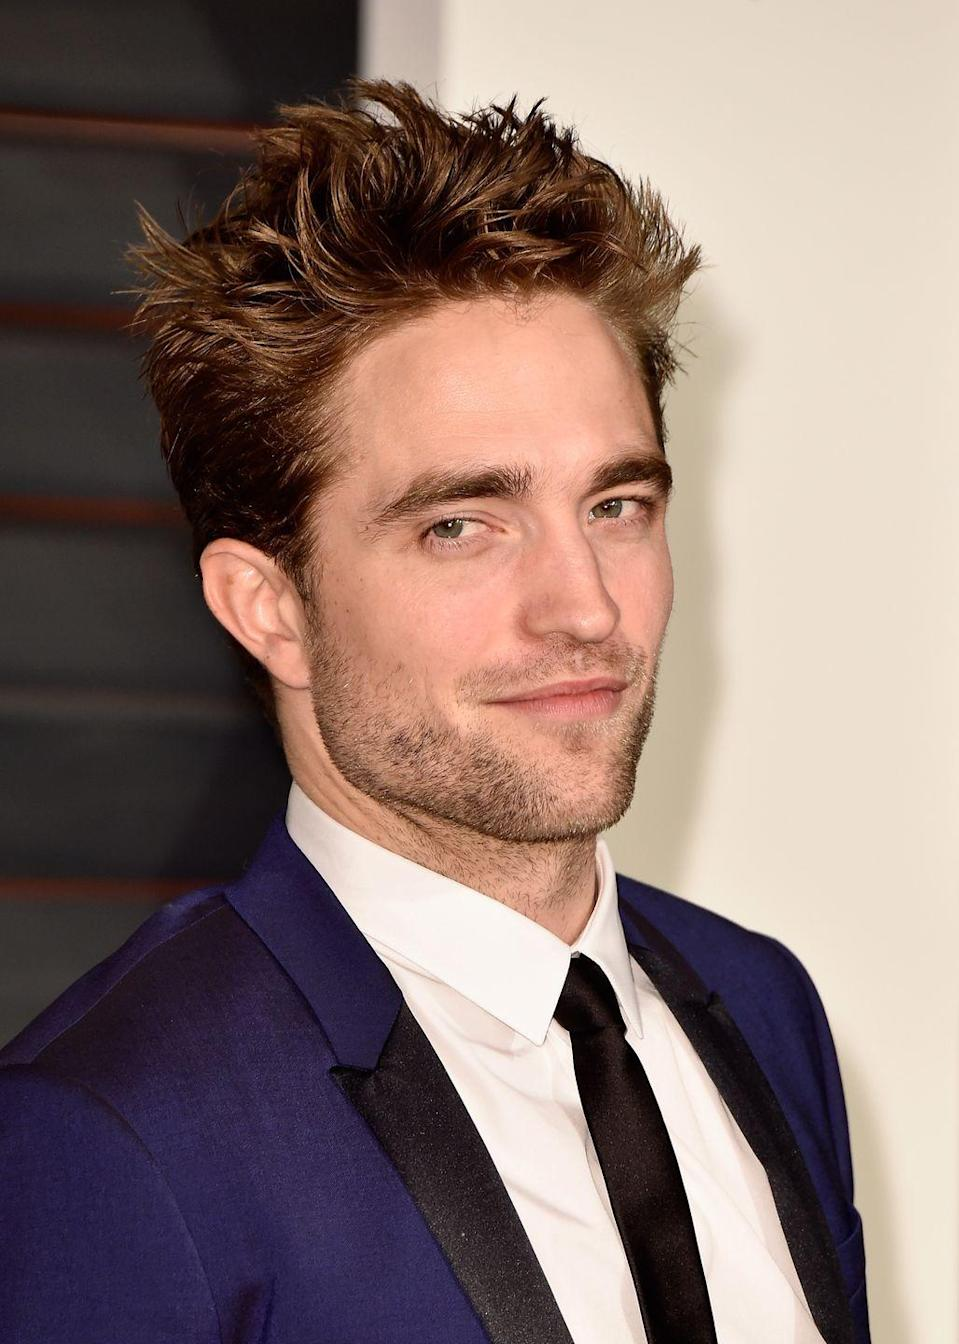 "<p>Robert Pattinson hates <em>Twilight</em>, hates Edward, and hates how everyone likes both. (P.S. There's even <a href=""http://robertpattinsonhatingtwilight.tumblr.com/ "" rel=""nofollow noopener"" target=""_blank"" data-ylk=""slk:a Tumblr devoted"" class=""link rapid-noclick-resp"">a Tumblr devoted</a> to his interviews where he has to talk about <em>Twilight</em>, and ultimately makes fun of it.) Perhaps the best quote: ""He's the most ridiculous person...the more I read the script, the more I hated this guy...Plus, he's a 108 year-old virgin so he's obviously got some issues there.""</p>"